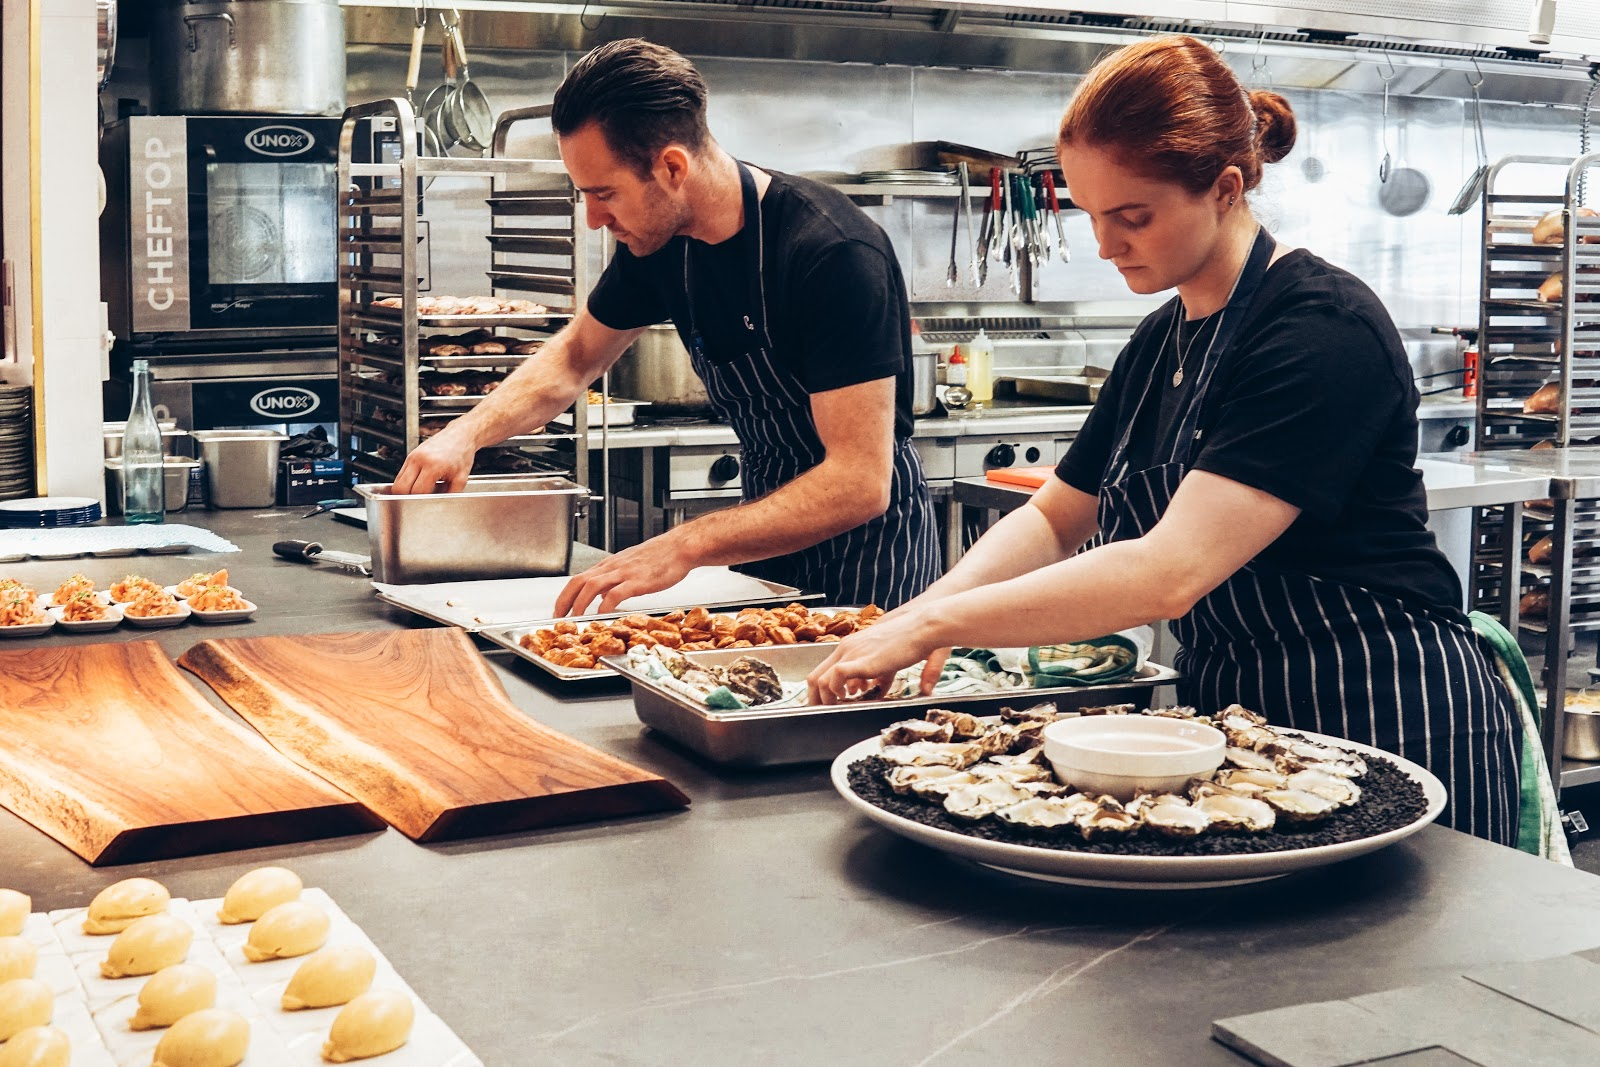 Used restaurant equipment: Two cooks in striped aprons preparing food